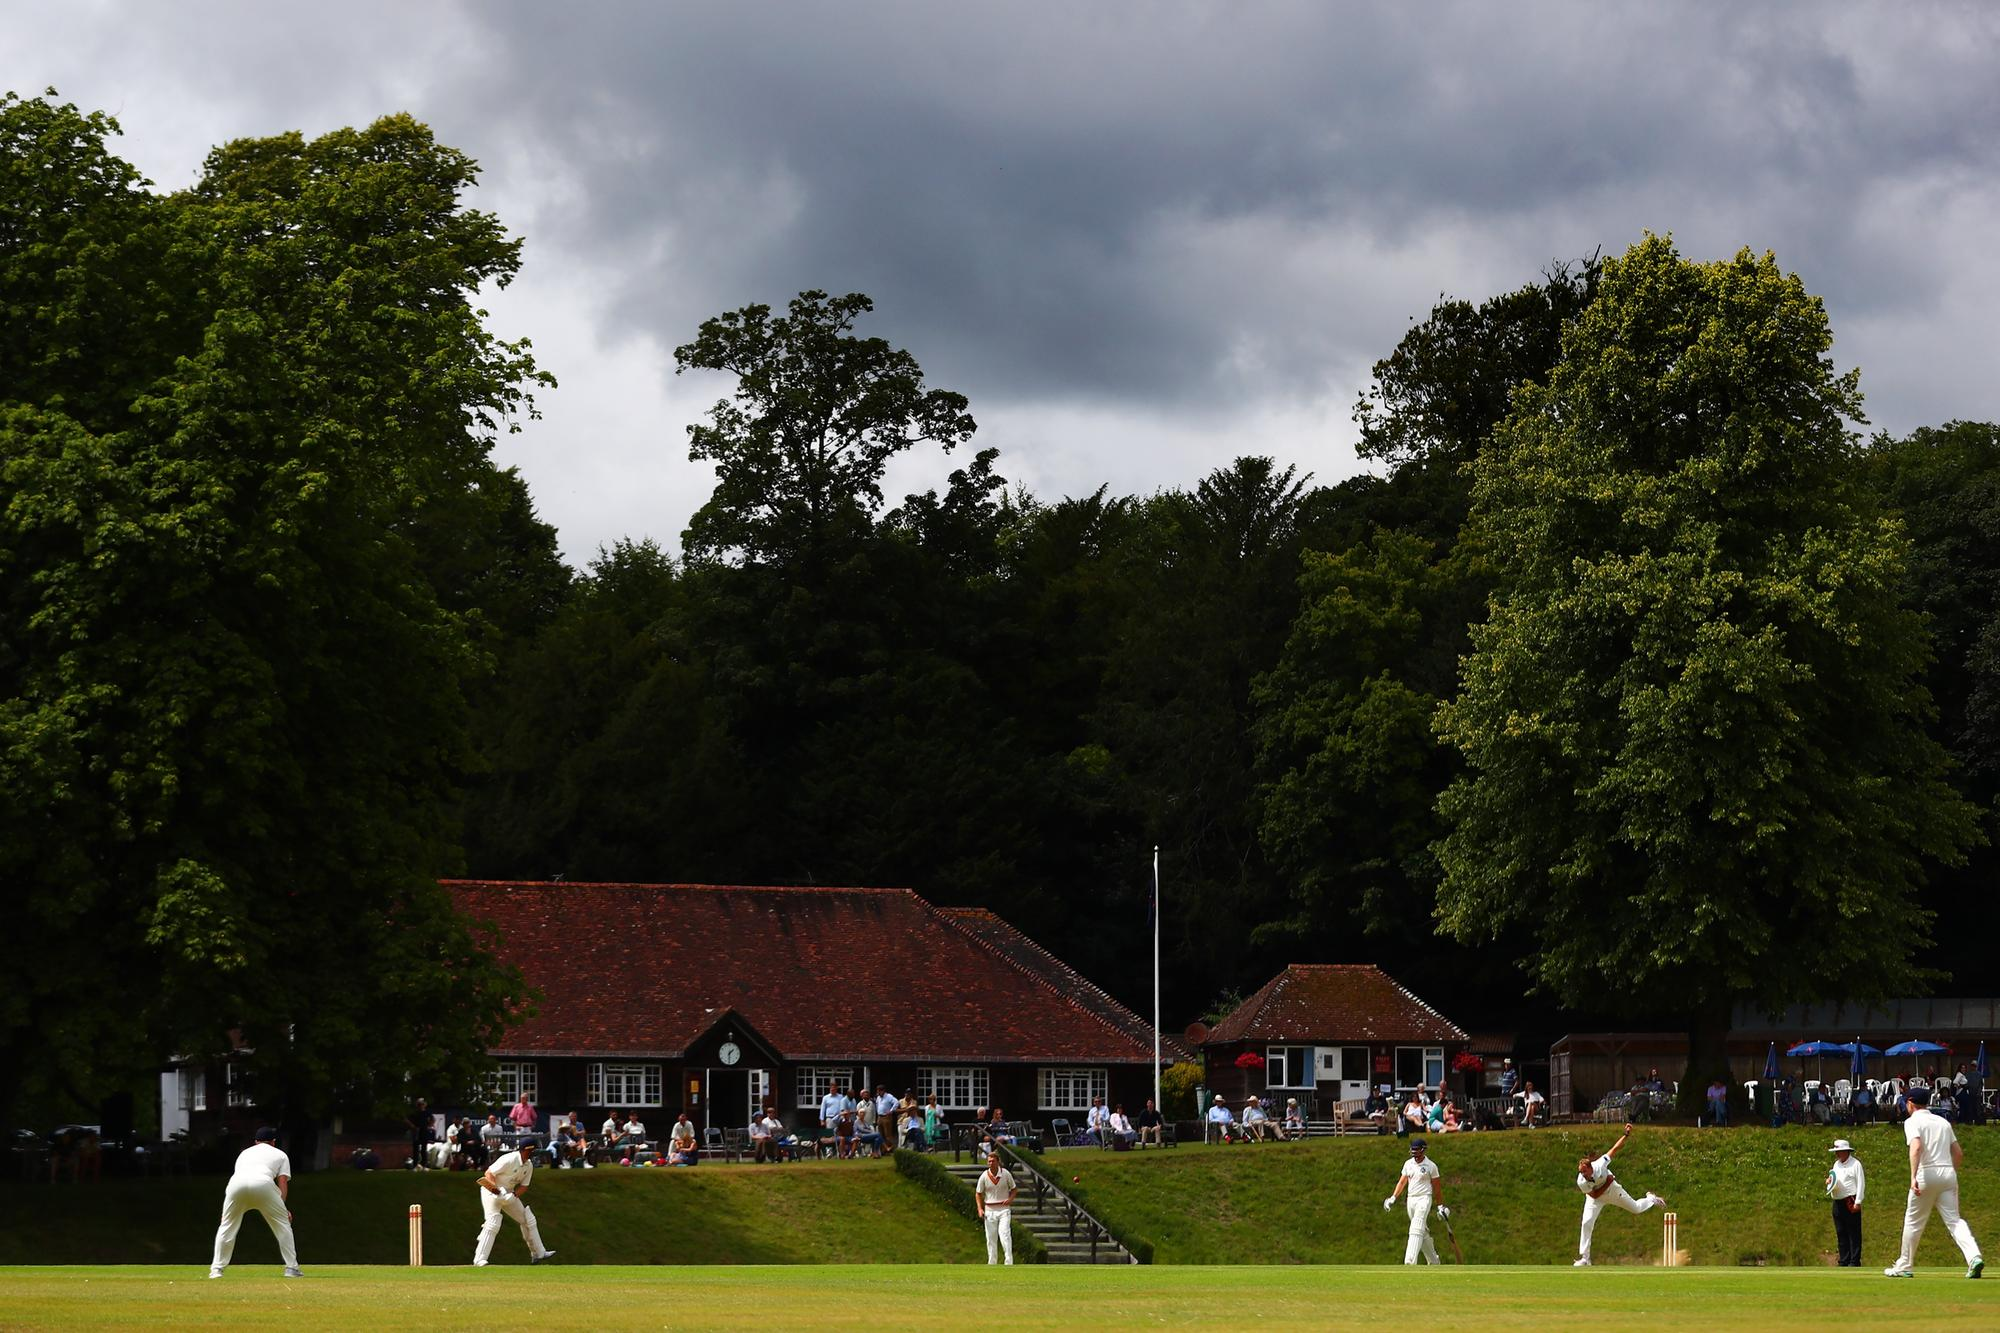 Come in number 15 – Arundel set to be added to list of Hampshire's 'home' grounds for first class fixtures